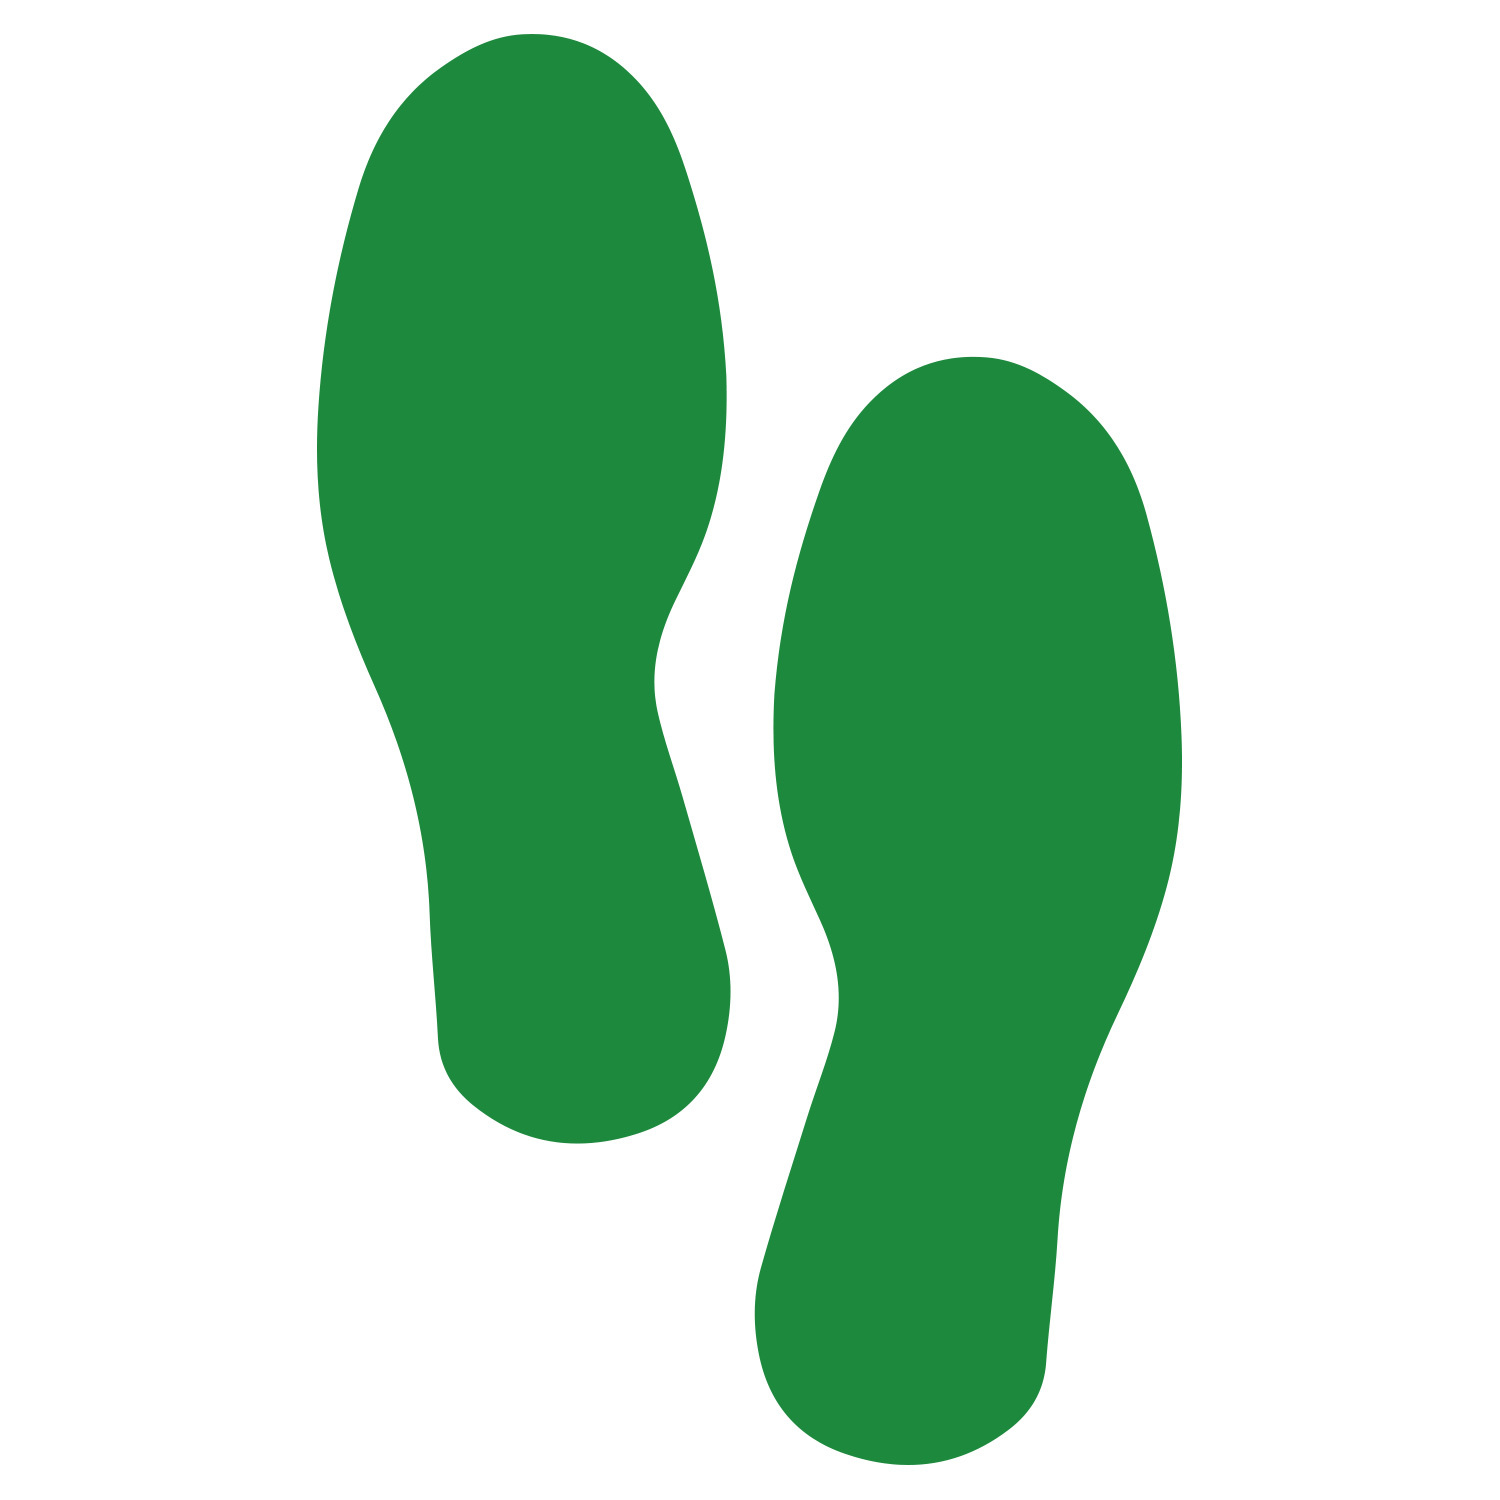 Primary image for LiteMark Large Size Green Removable Footprint Decals  - Pack of 8 (4 Pairs)